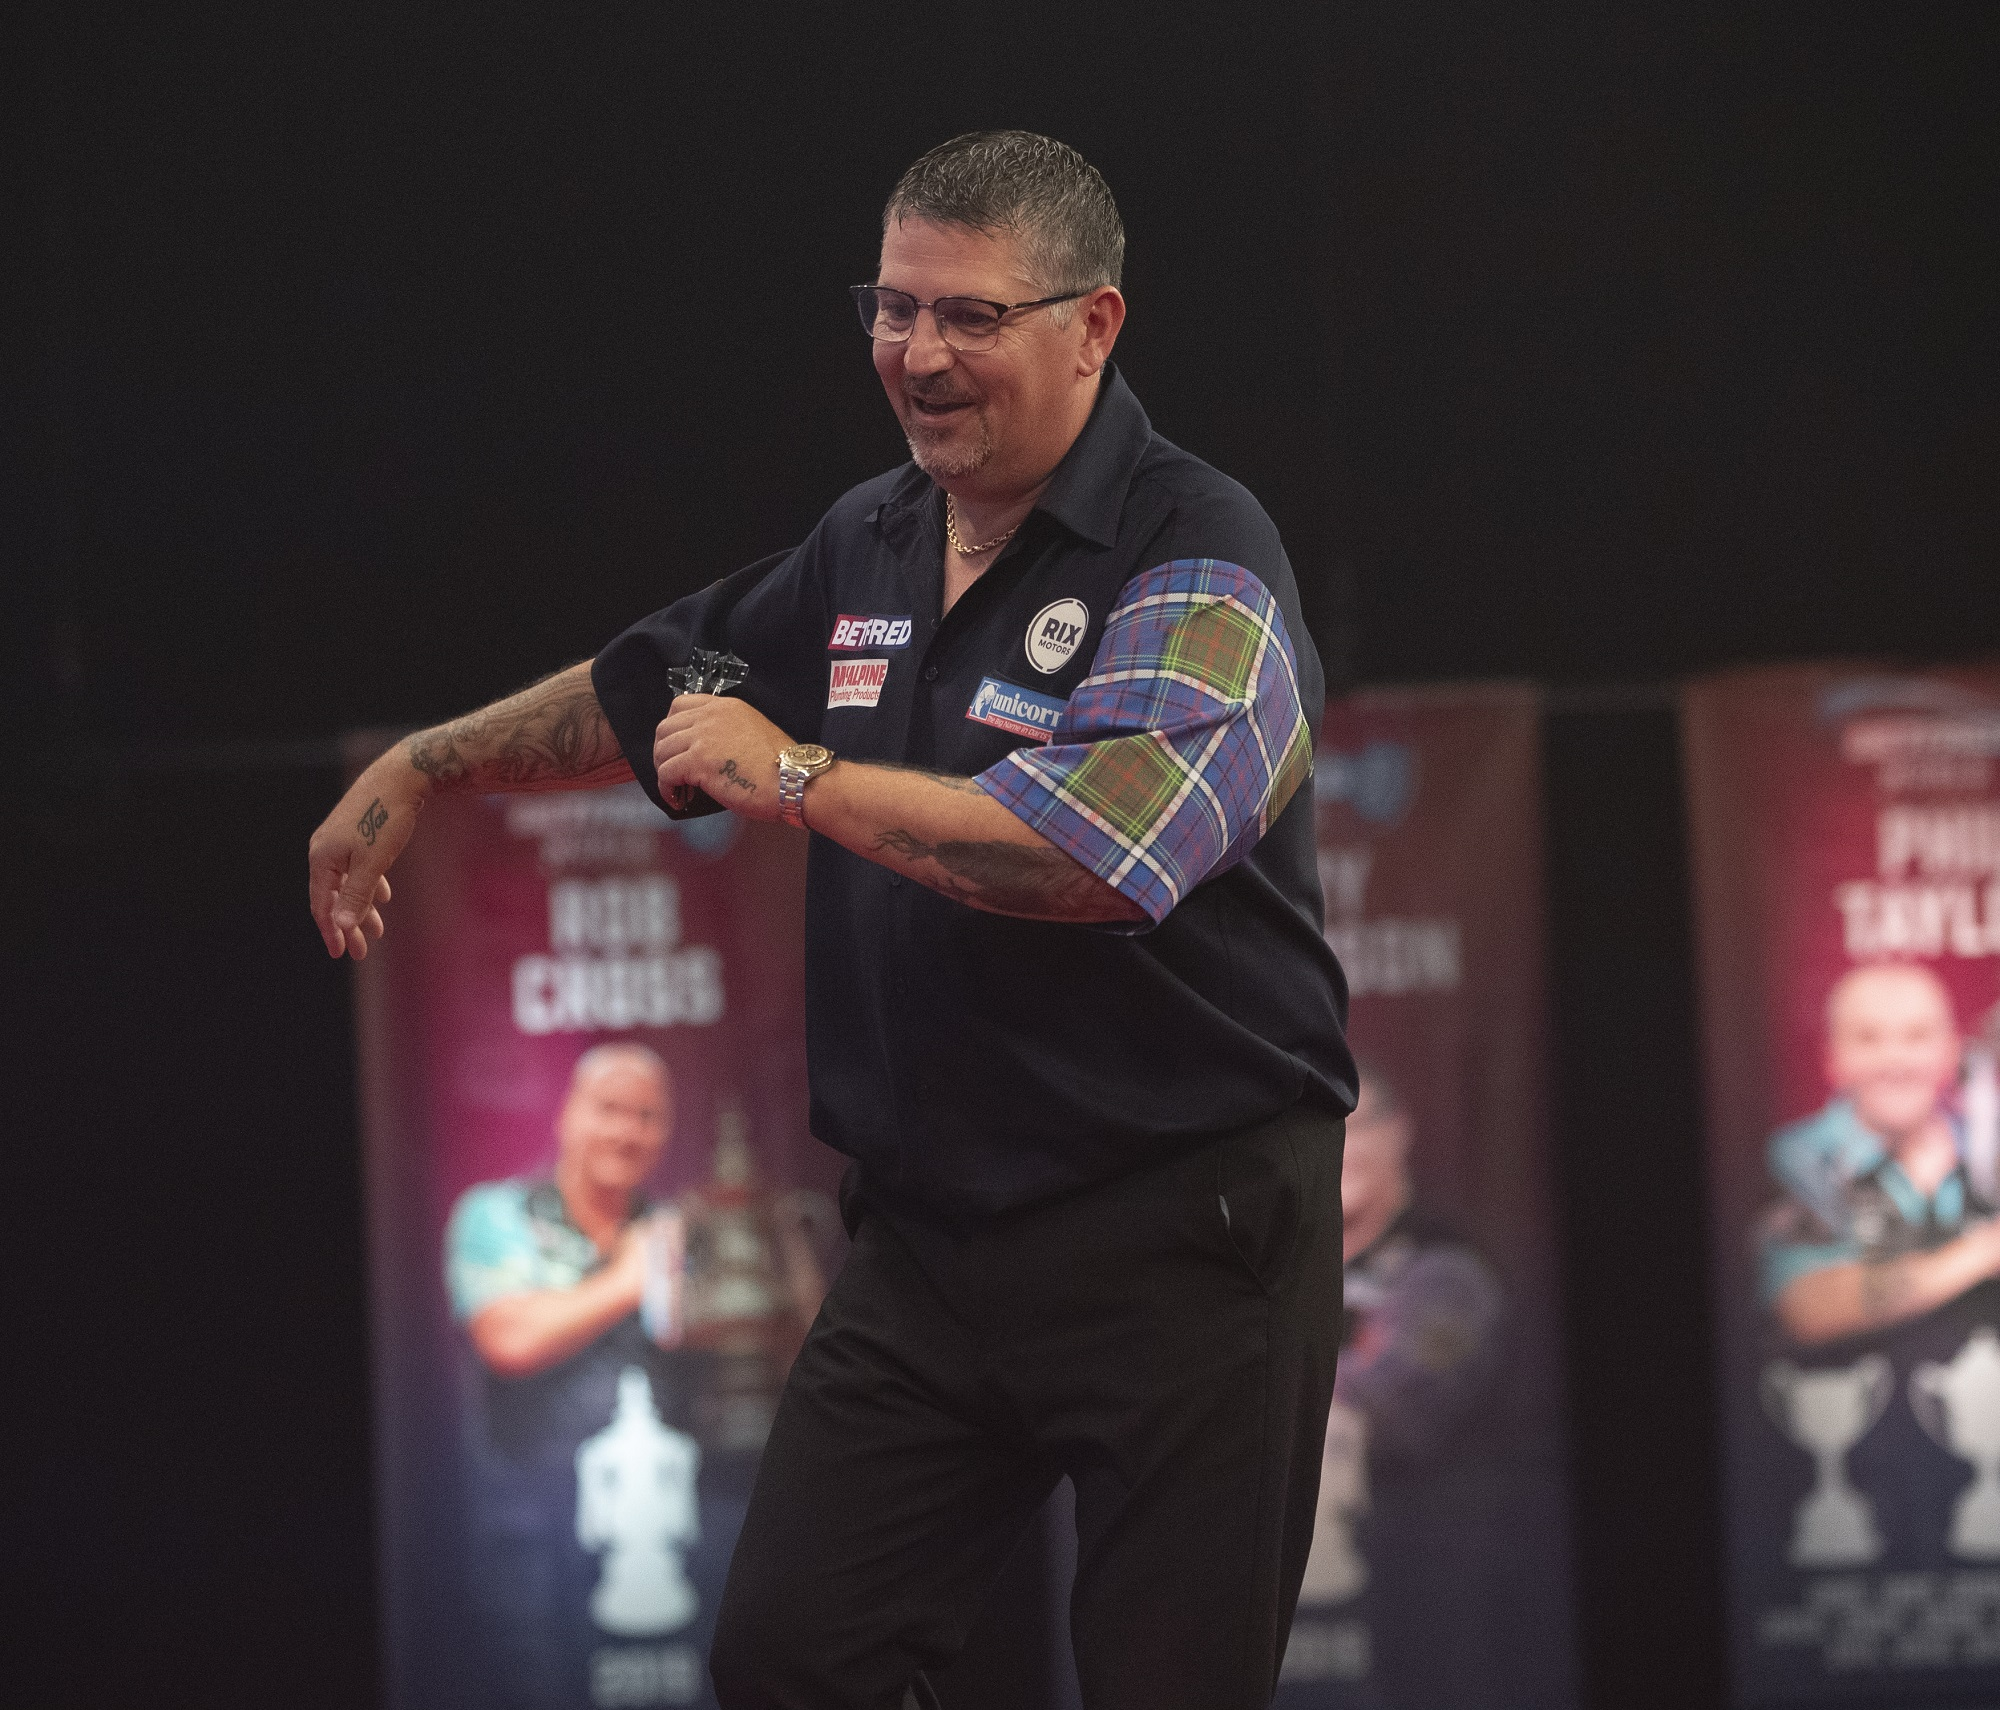 """Premier League Darts 2021 Preview: """"Which Gary Anderson will we see this year?"""""""